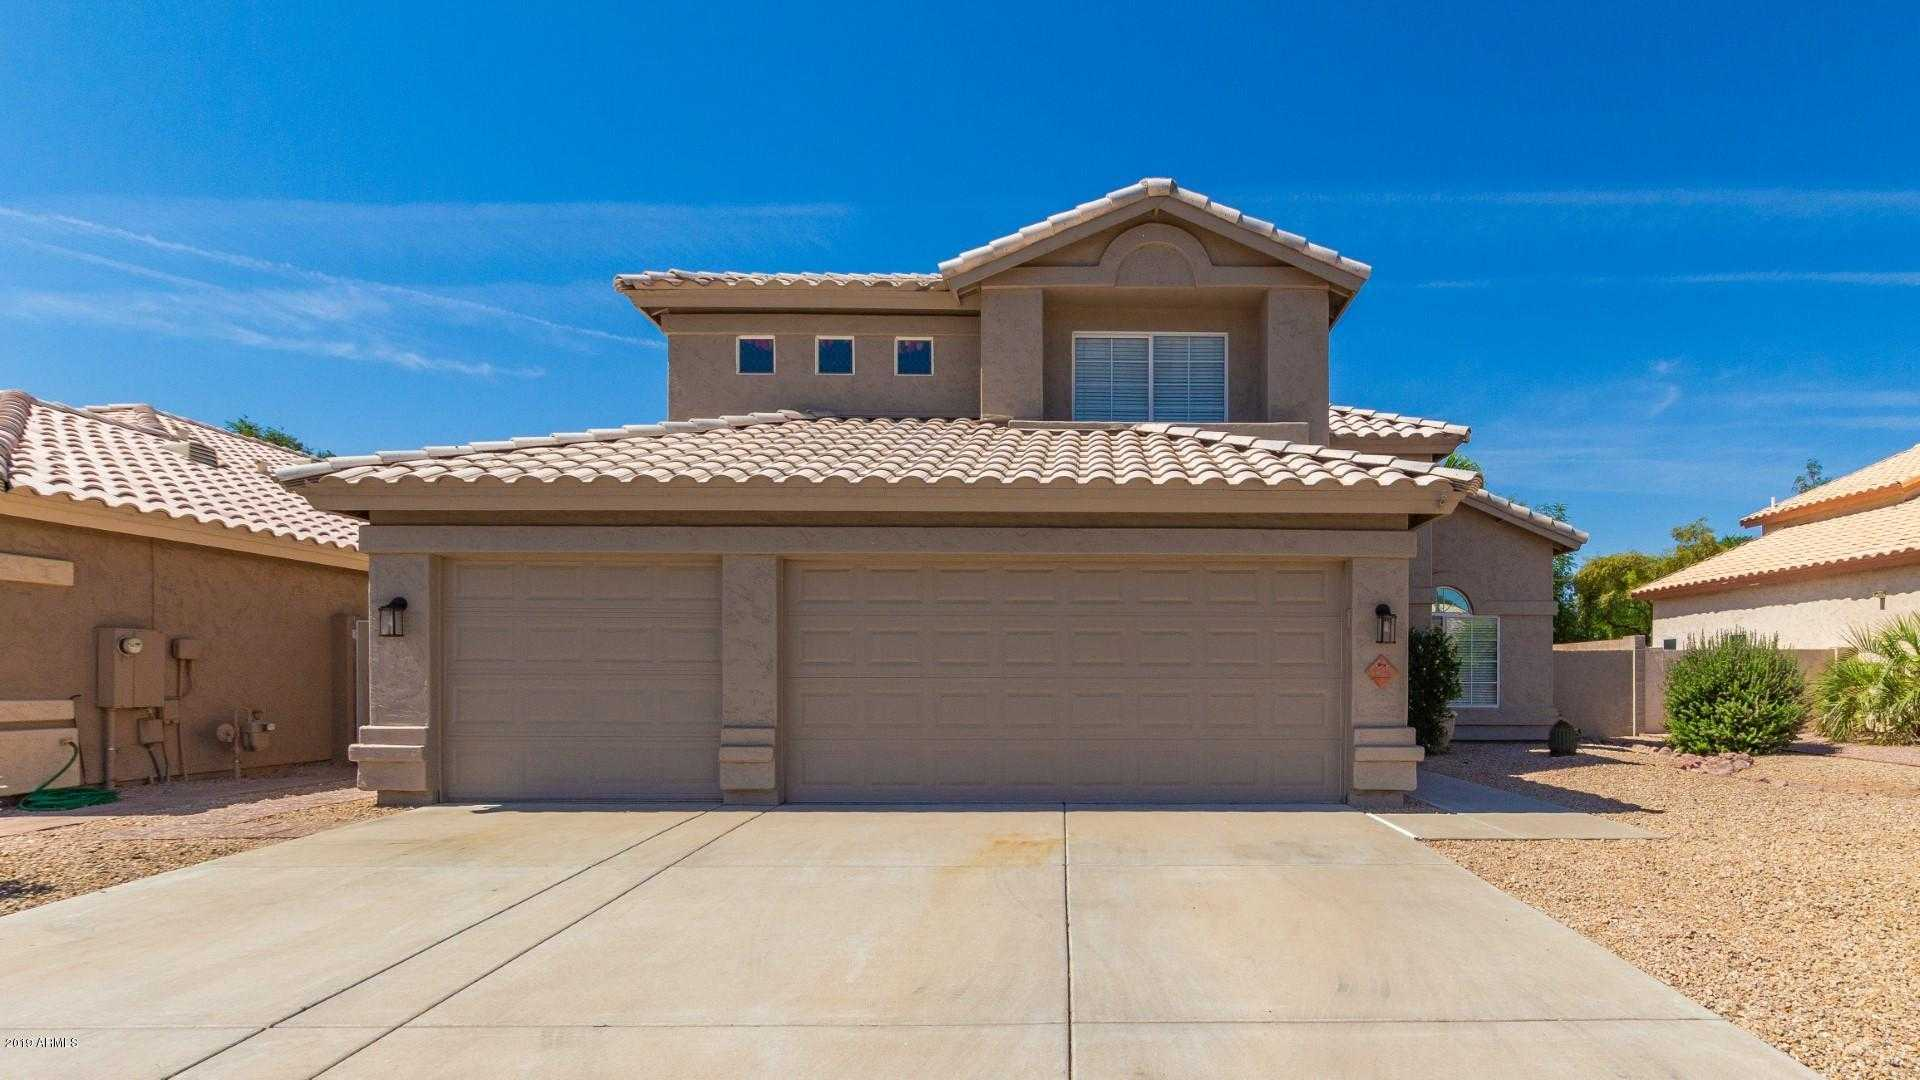 $399,000 - 4Br/3Ba - Home for Sale in Tanoan (arrowhead Ranch), Glendale